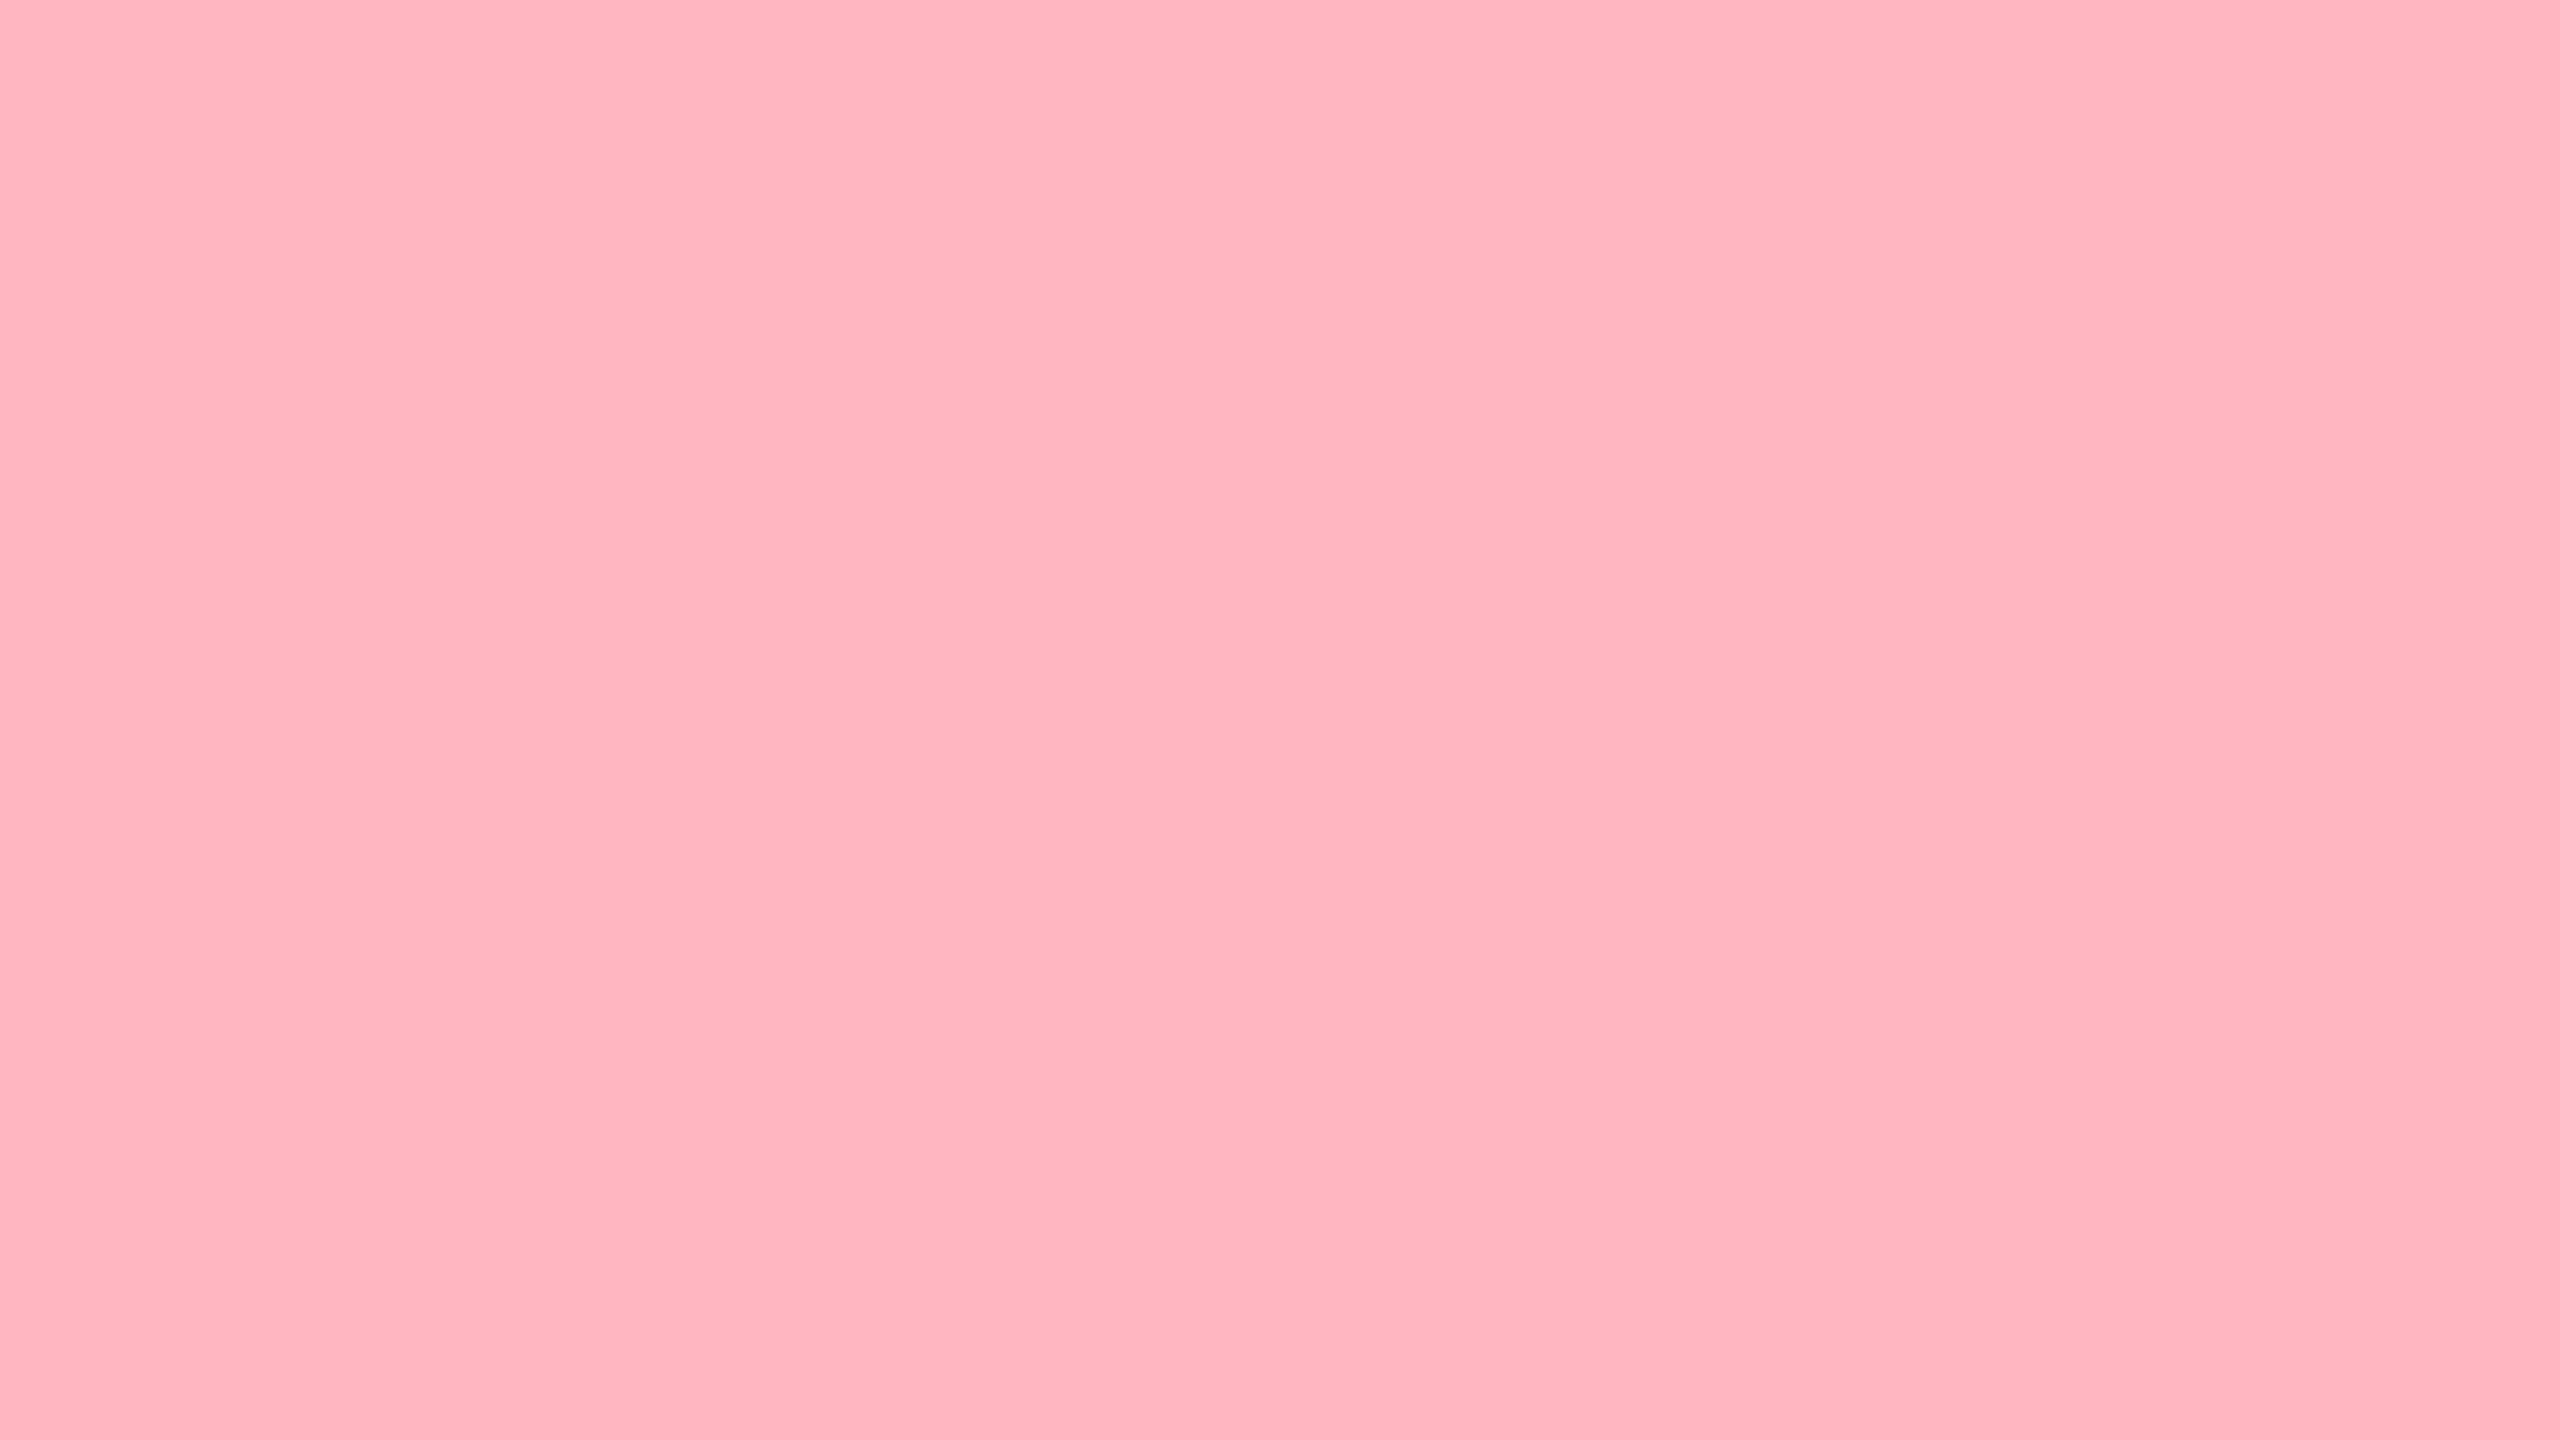 Pink Slime Wallpapers Wallpaper Cave